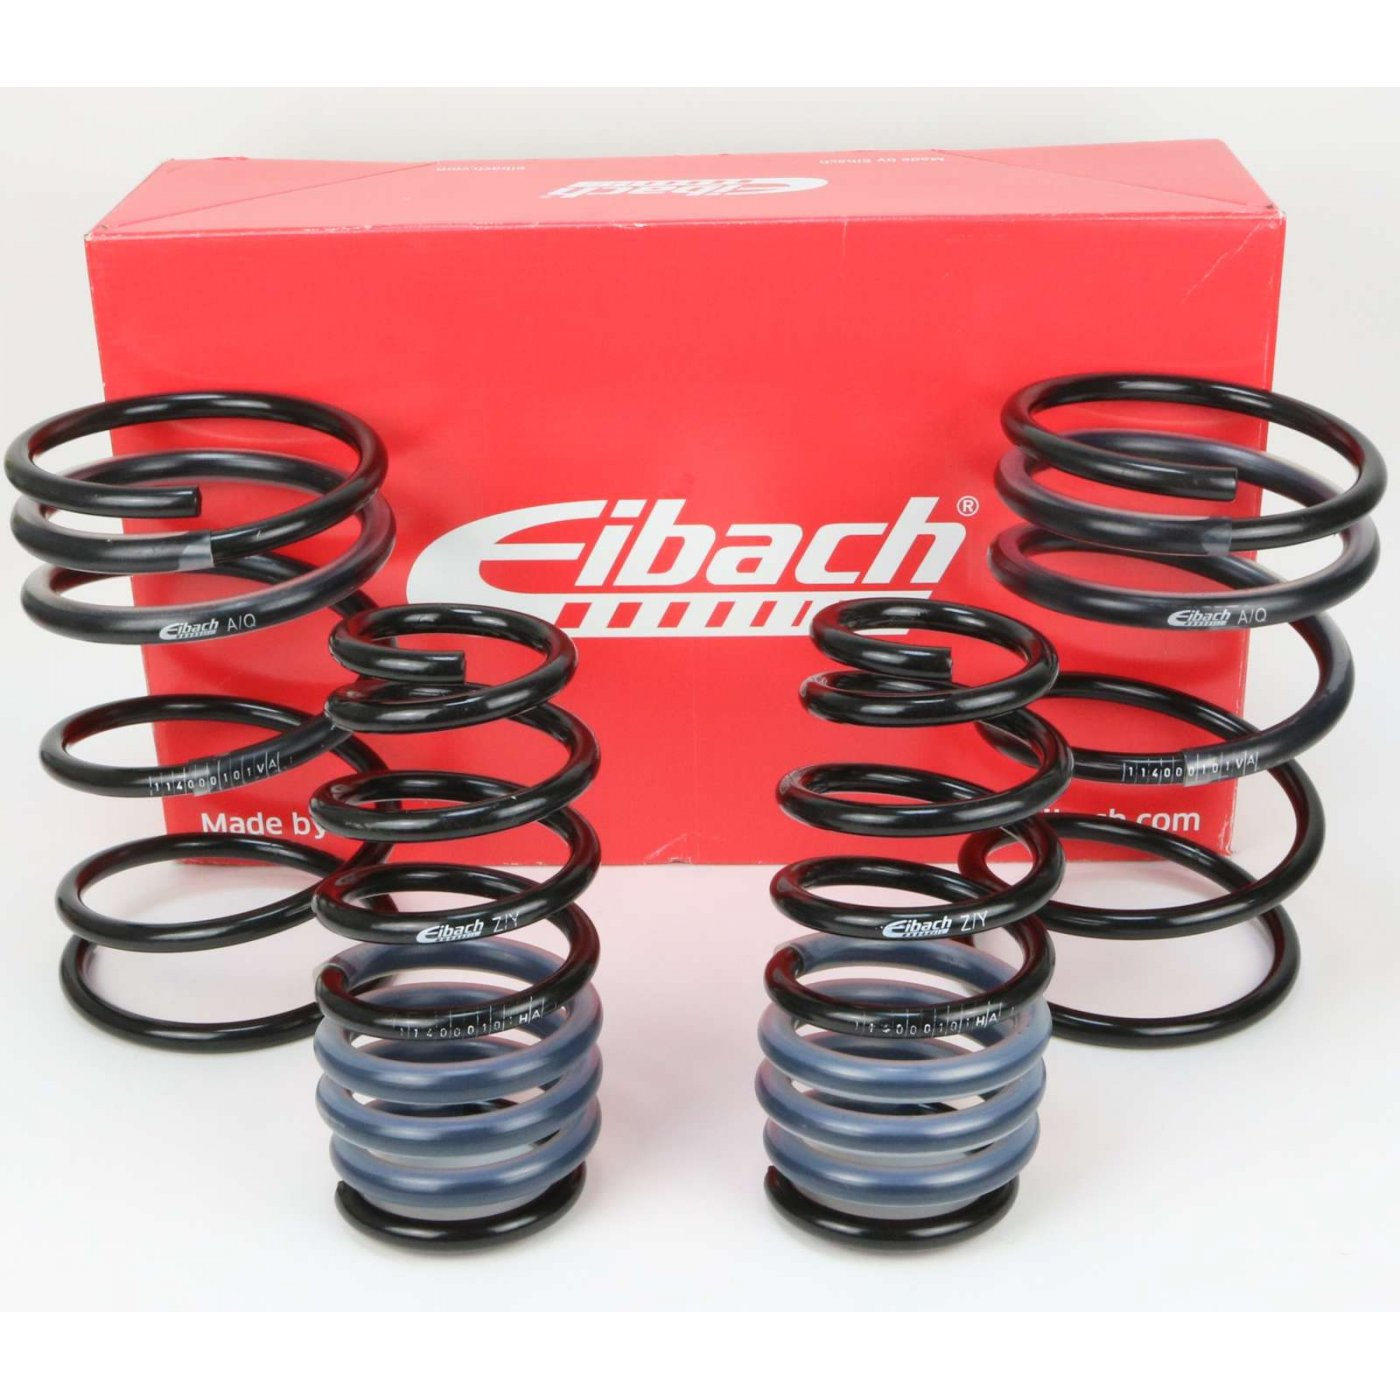 EIBACH Pro-Kit SAAB 900 II CABRIOLET / CONVERTIBLE rok výroby 12.93 - 02.98 35 mm /35 mm